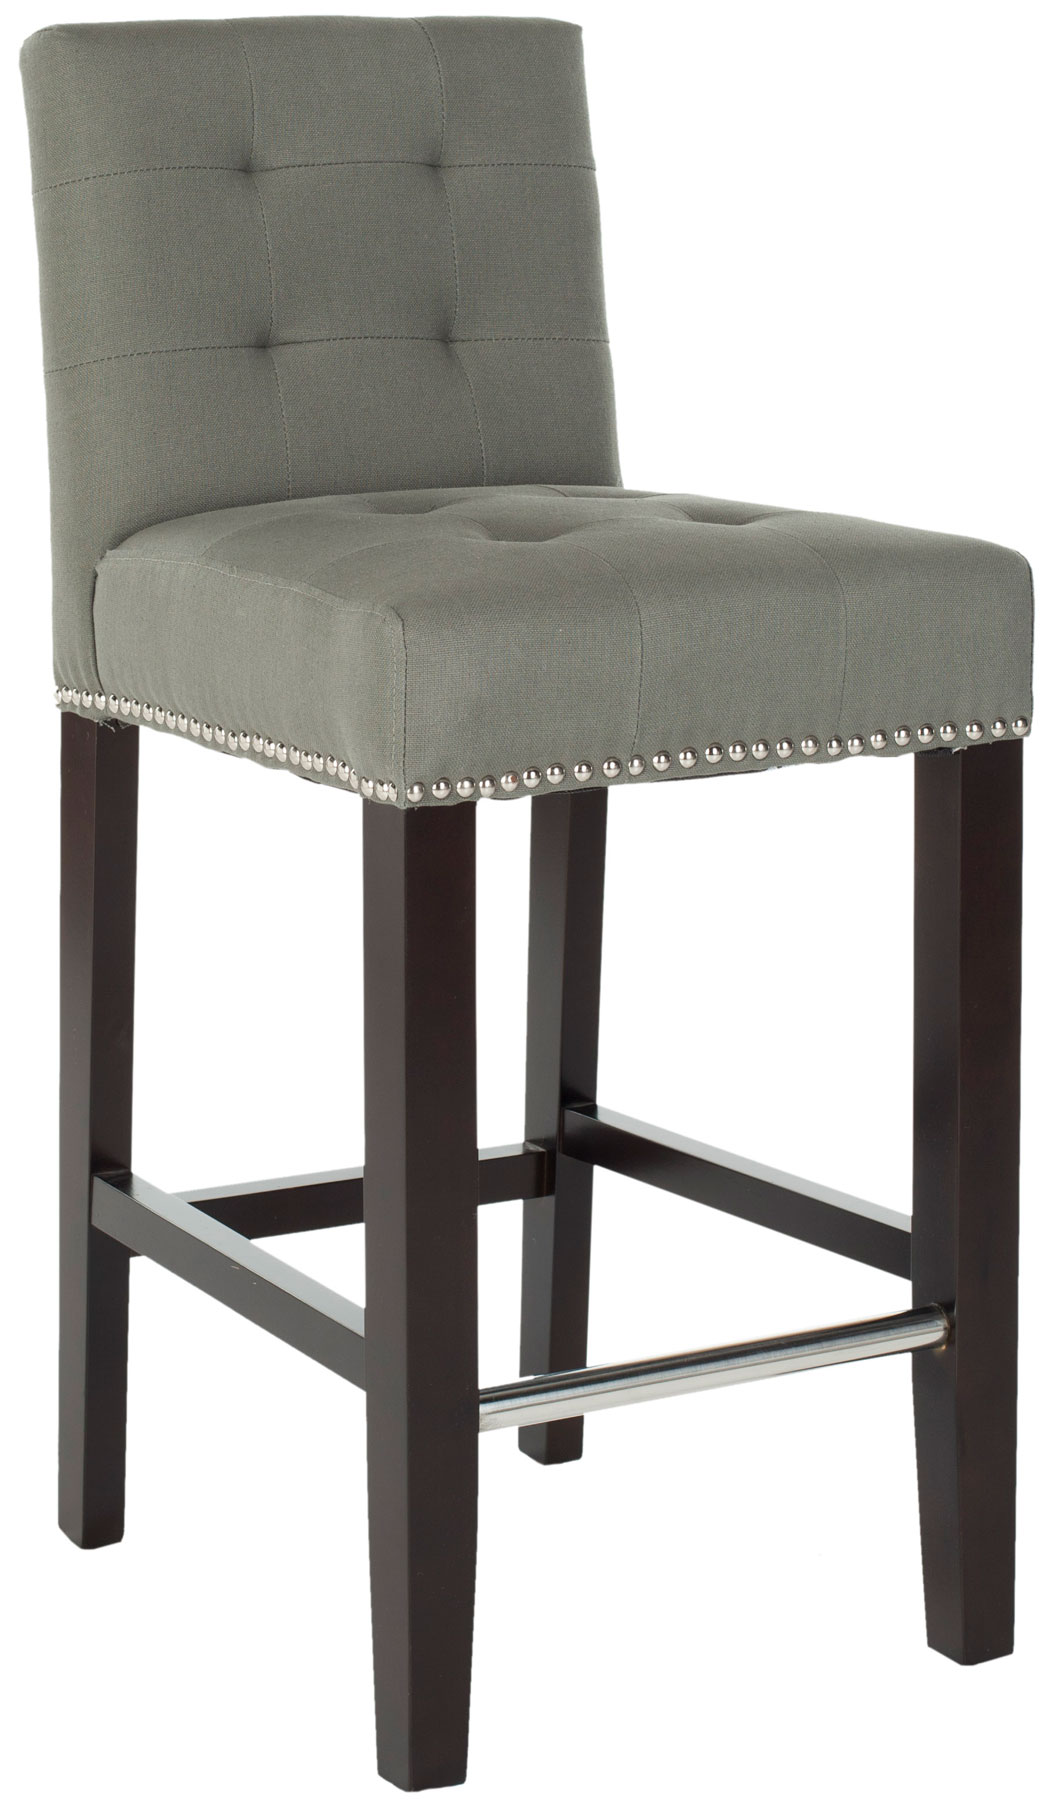 Mcr4511c Bar Stools Furniture By Safavieh